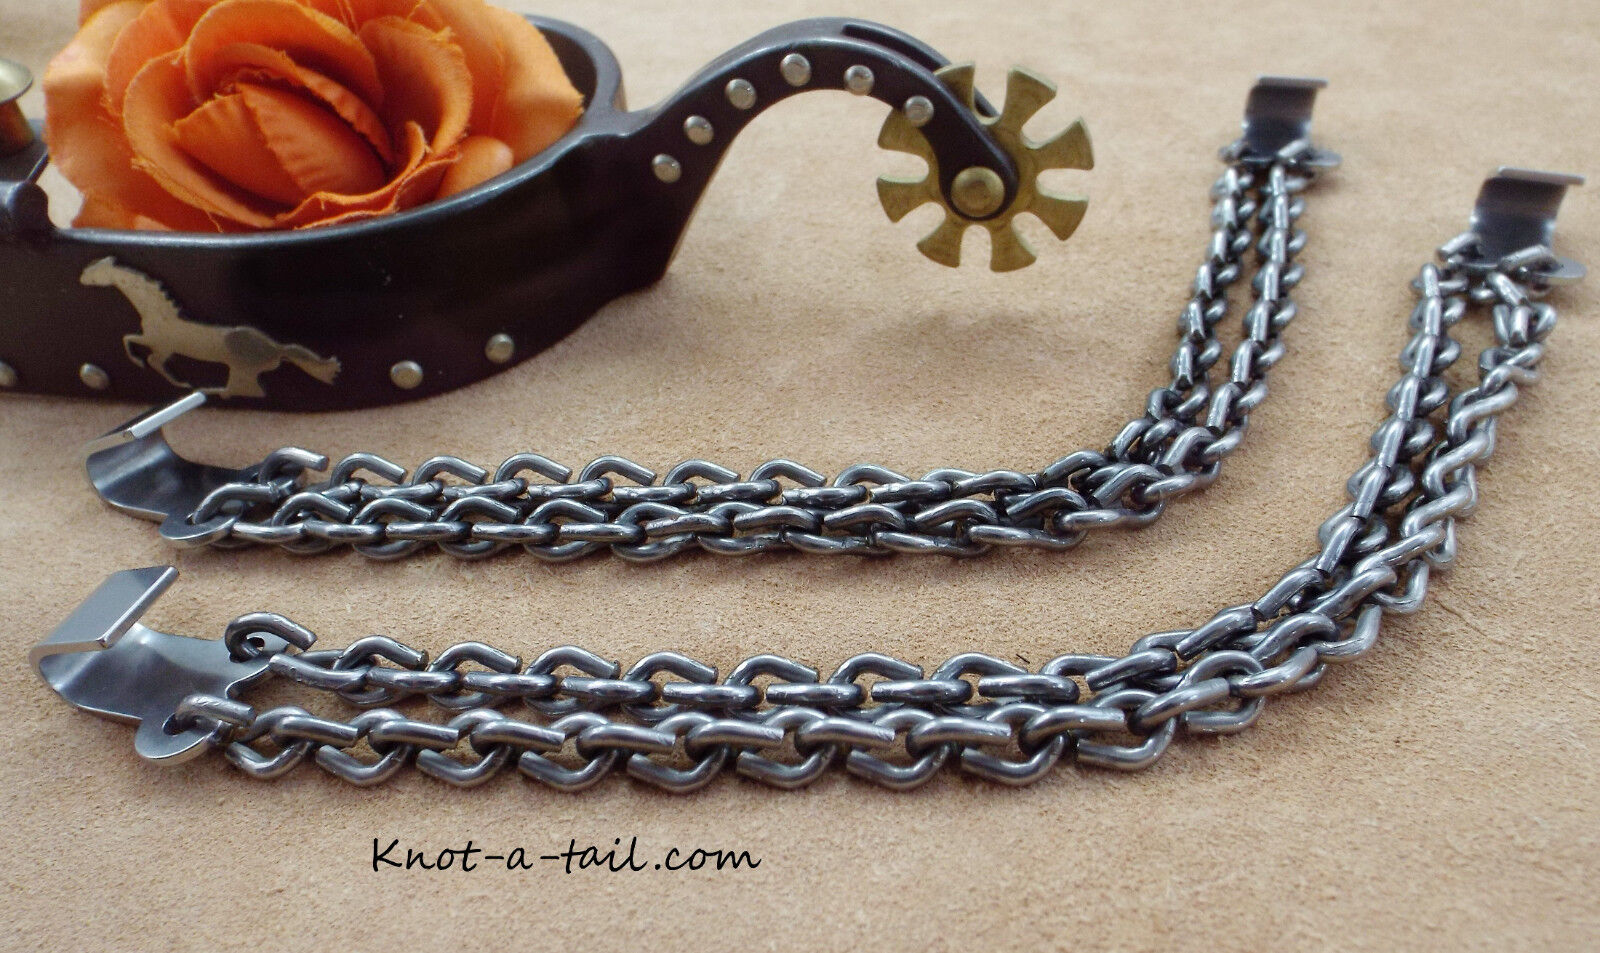 Spur heel chains, Hold-tight, steel, Cowboy boot heel chains, Tie-down chains